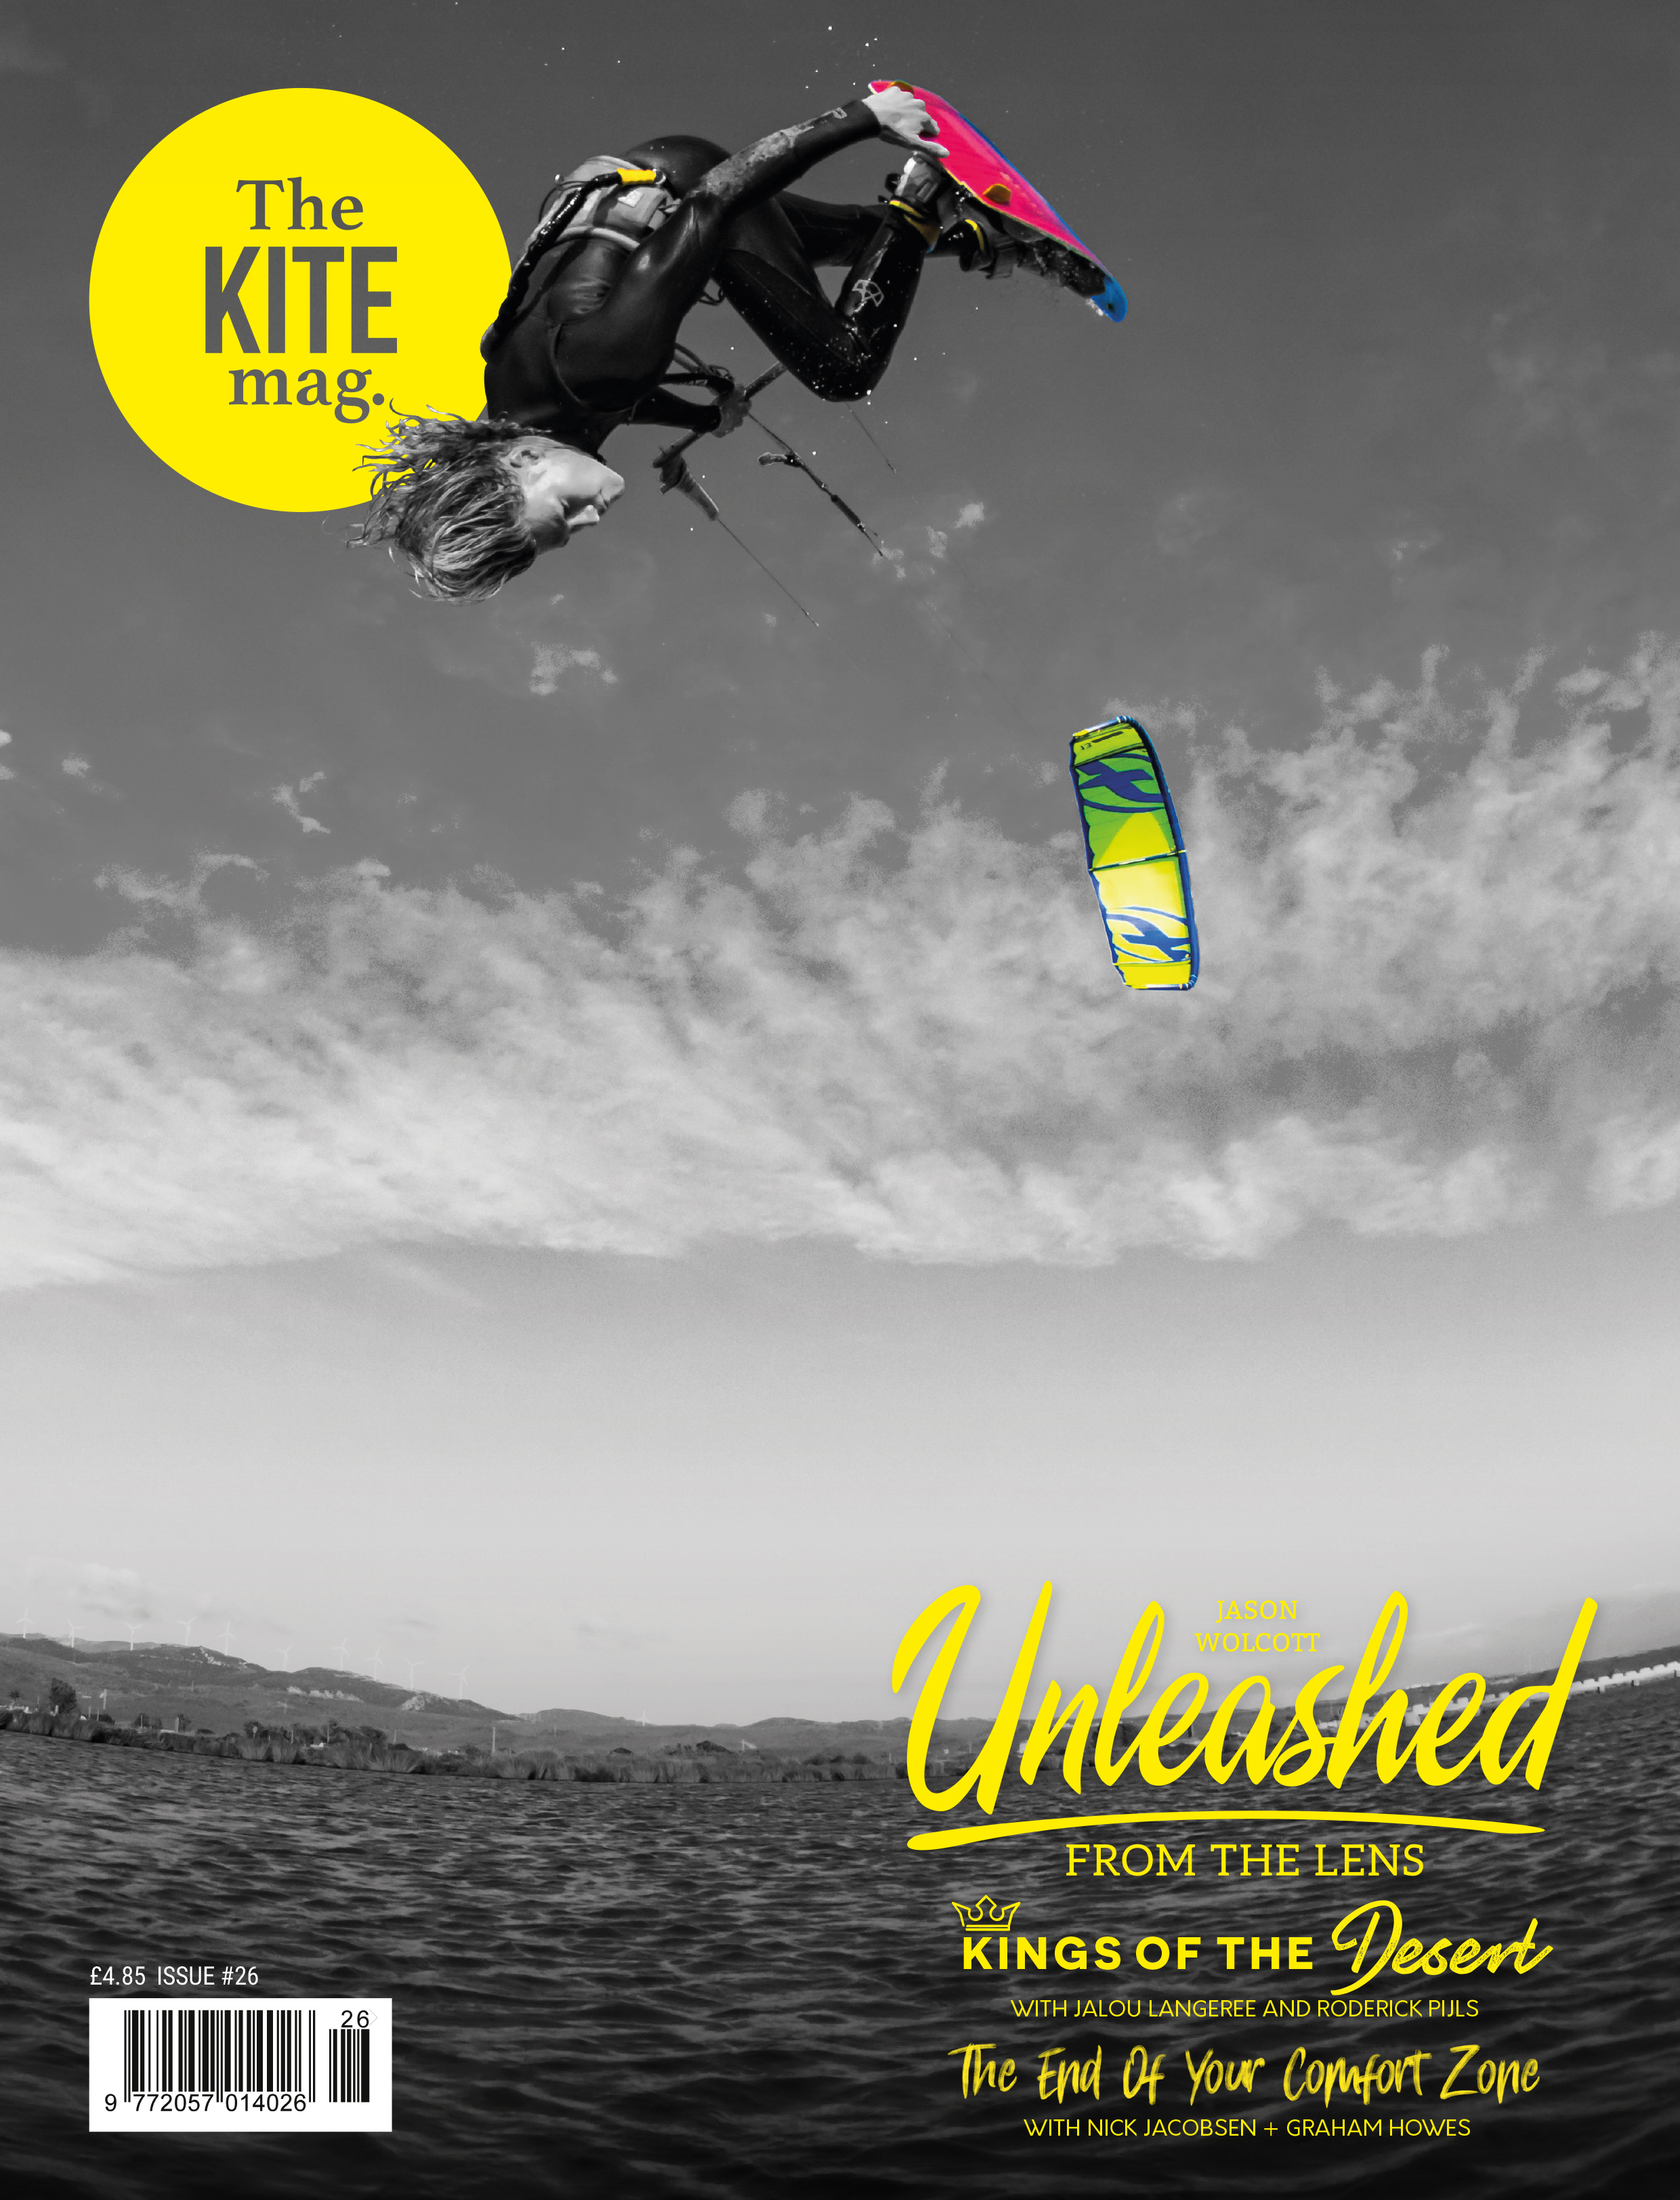 Cover 26 TheKiteMag - TheKiteMag - English (Preview Version)